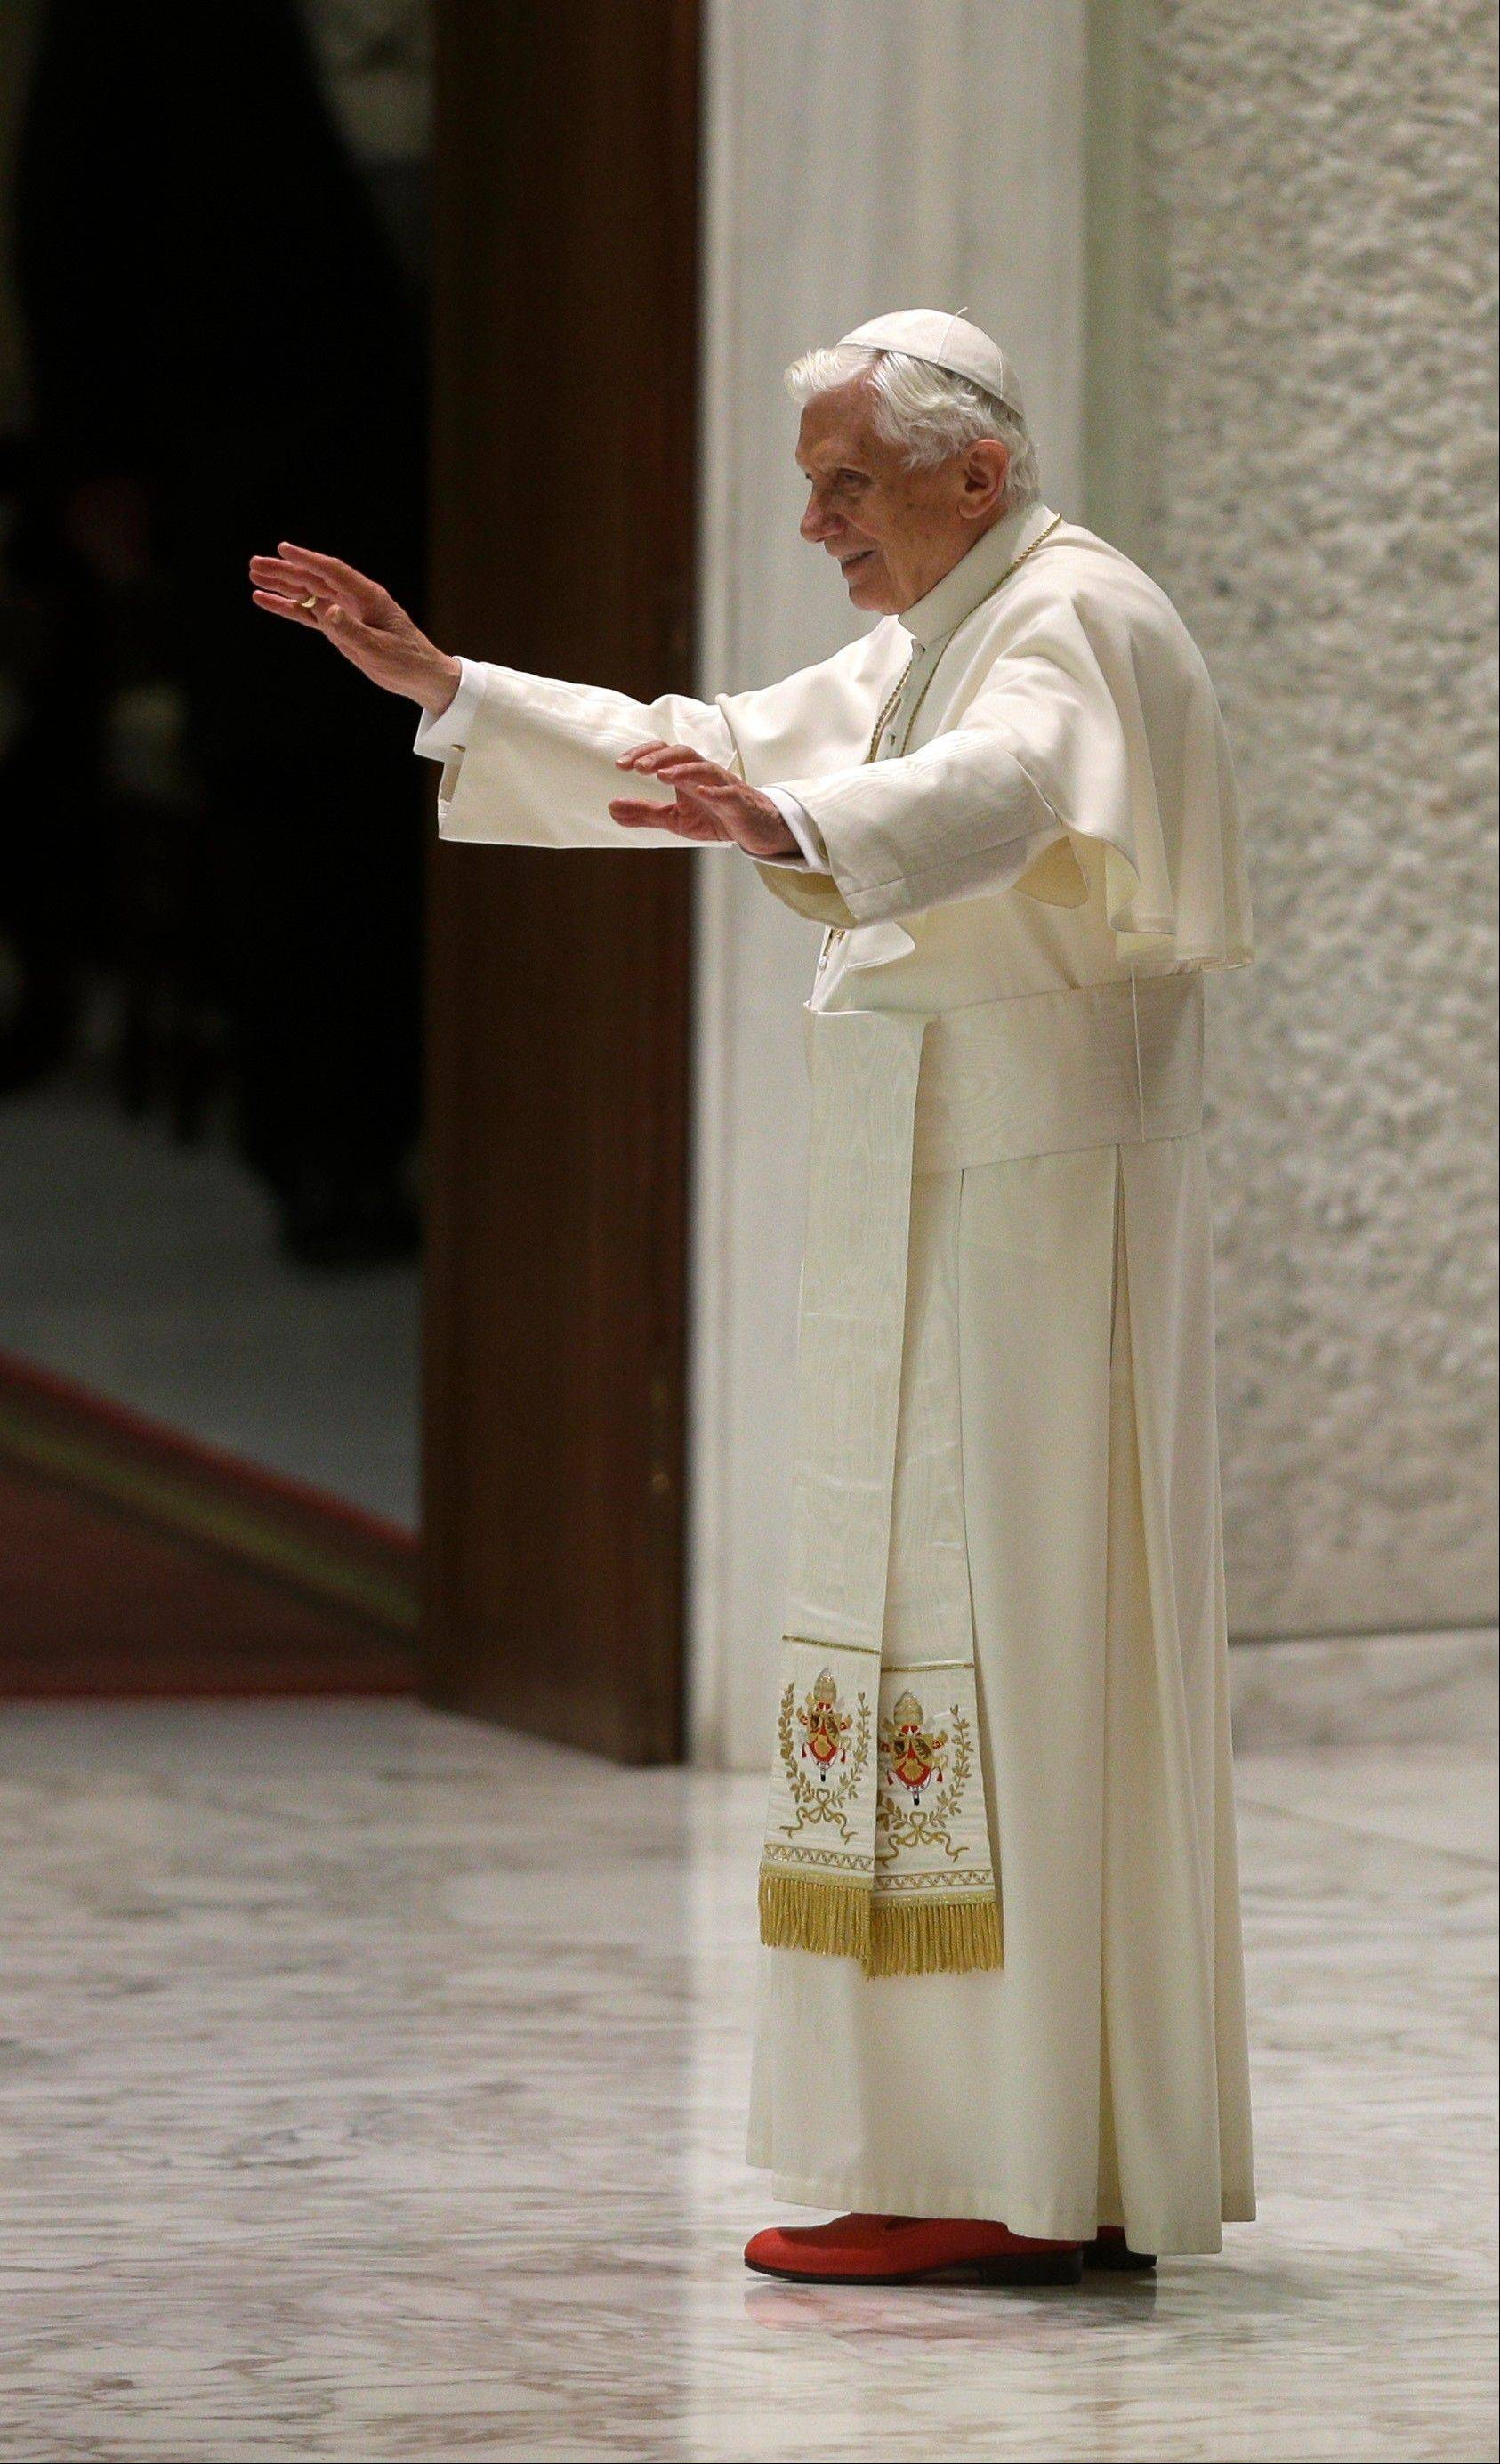 Pope Benedict XVI leaves after his weekly general audience in the Paul VI hall at the Vatican.